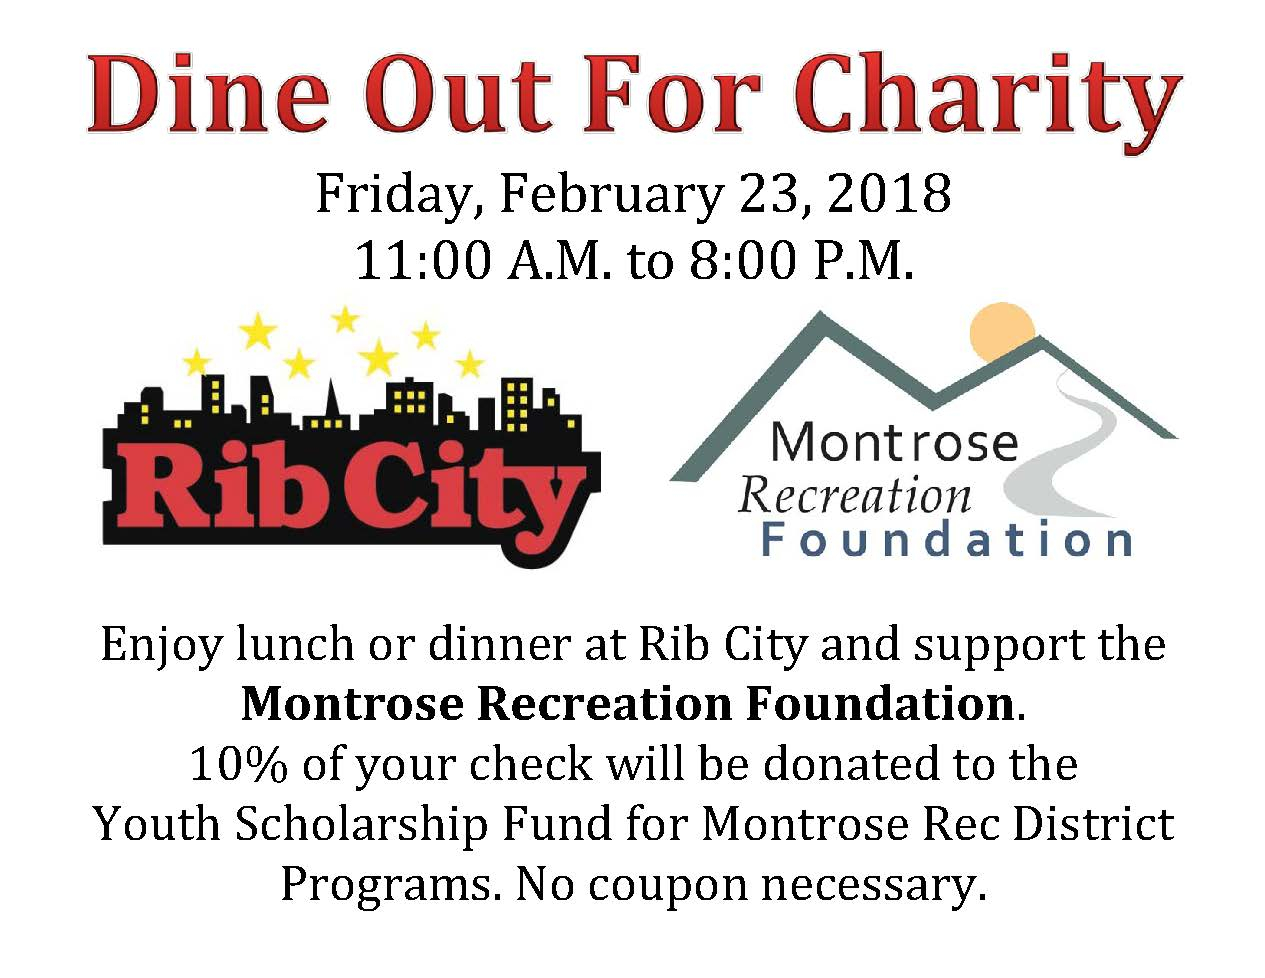 Dine Out for Charity at Rib City Feb. 23